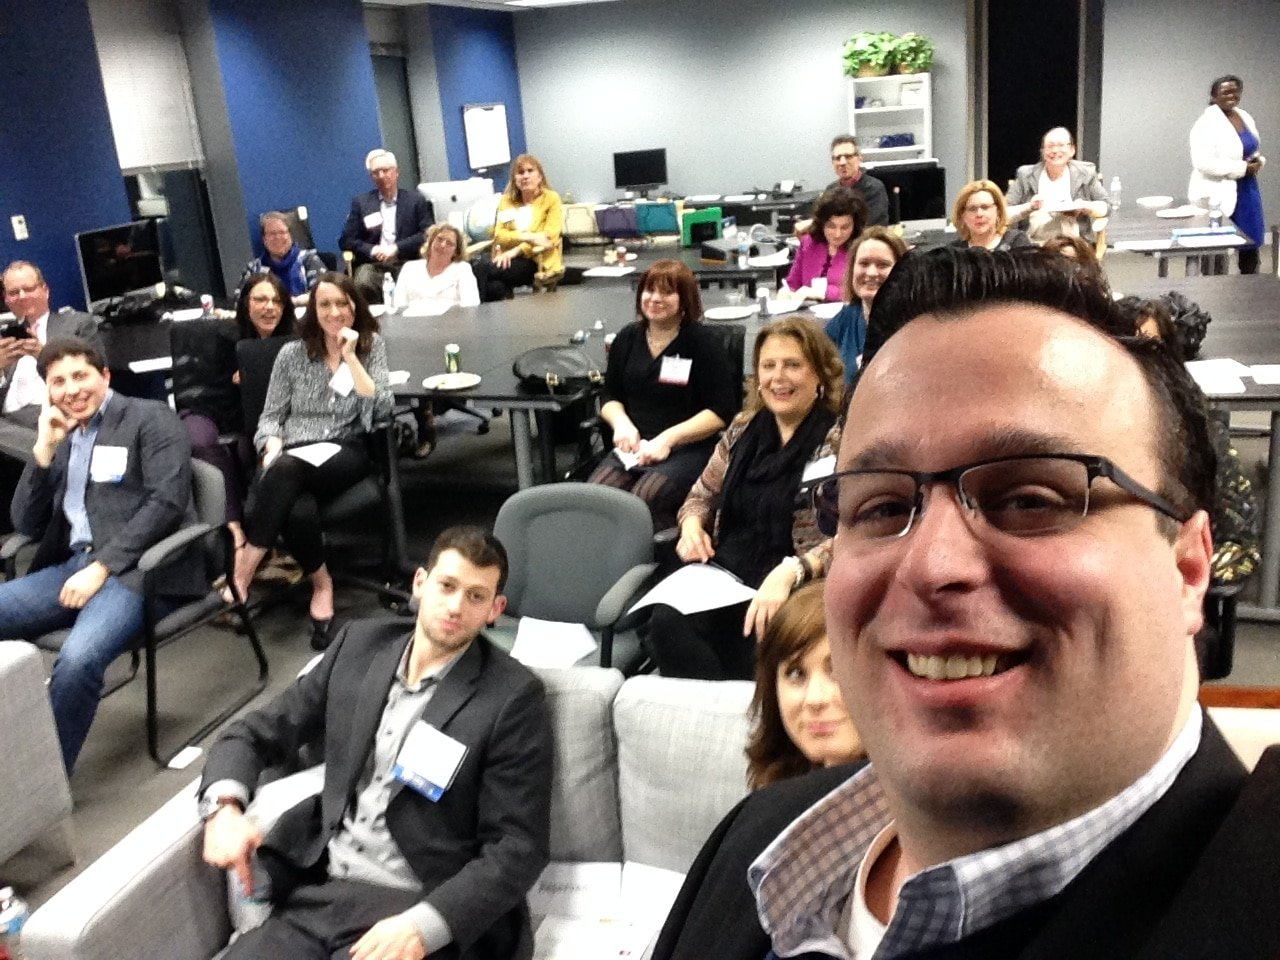 Group of people where Scott Winterroth takes selfie with group of attendees behind him